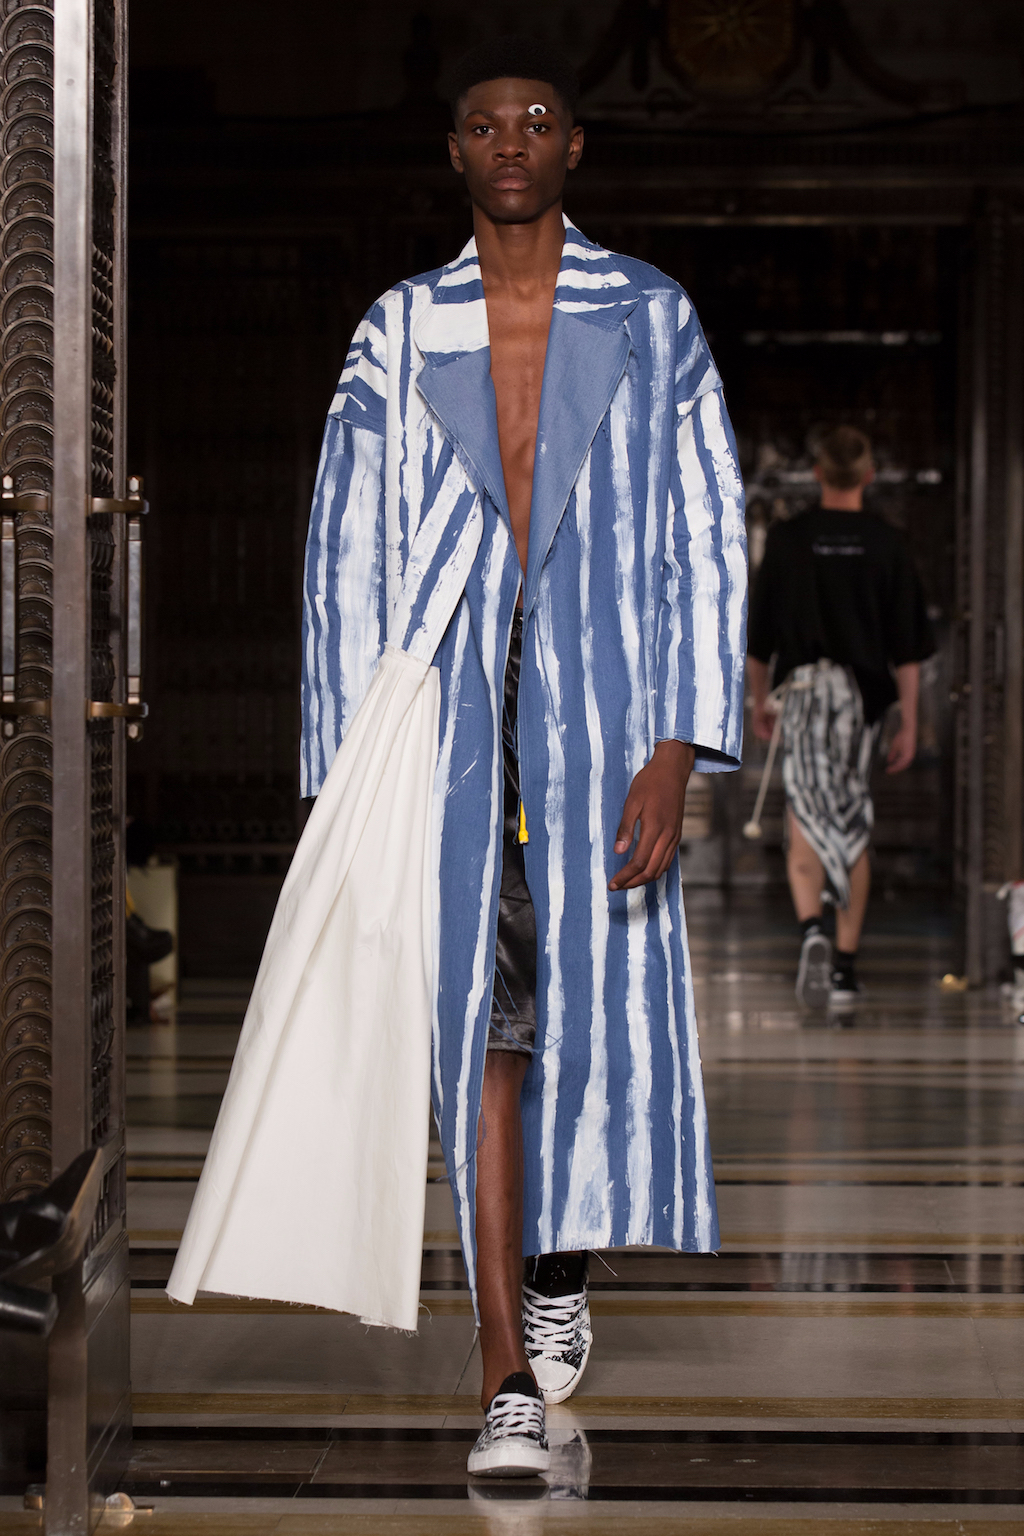 lfw-ss17-dumpty-the-upcoming-12